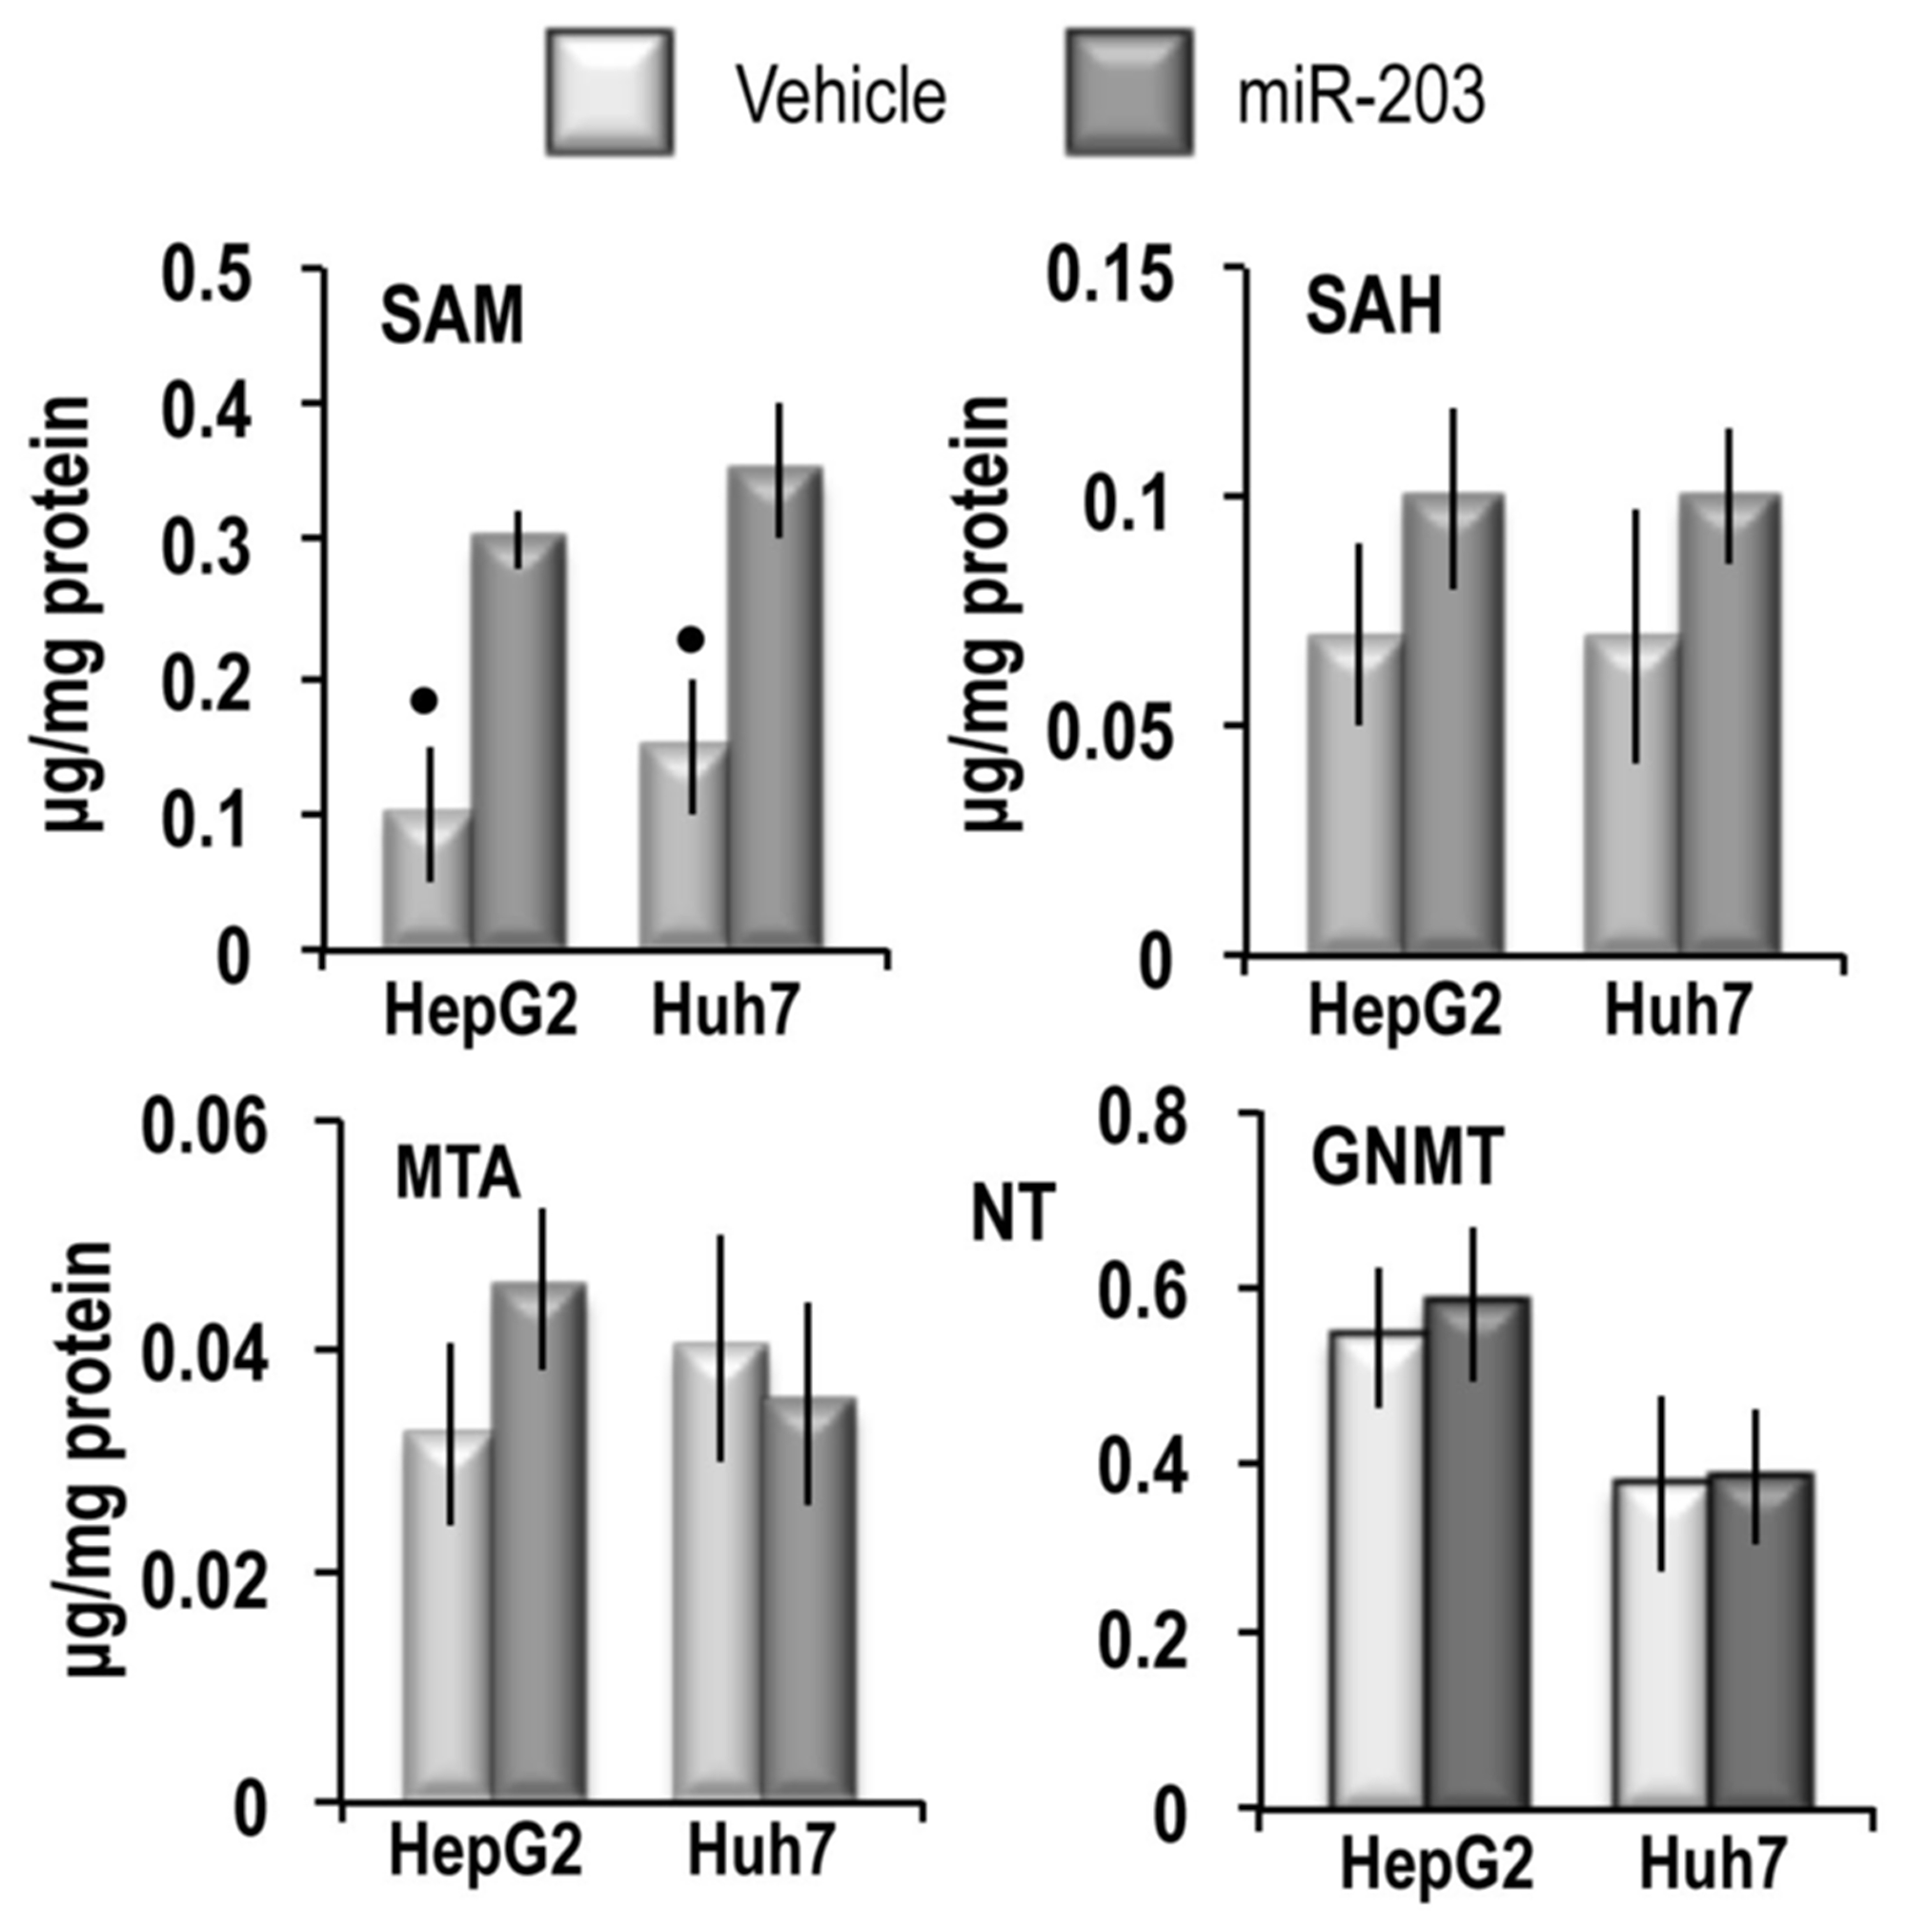 SAM, SAH and MTA content and GNMT expression in HepG2 and Huh7 cell lines.